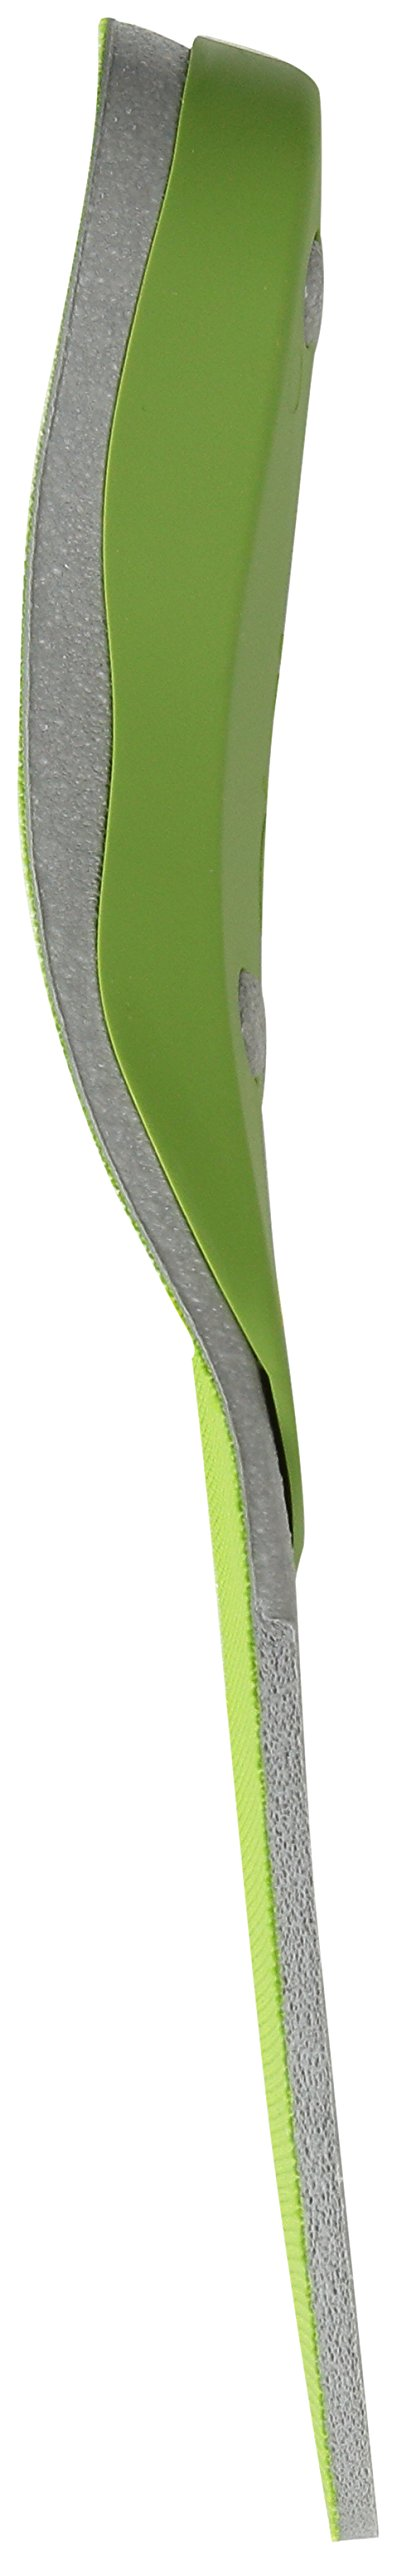 Superfeet GREEN Full Length Insole, Green, Medium D: 8.5-10 US Womens/7.5-9 US Mens by Superfeet (Image #3)